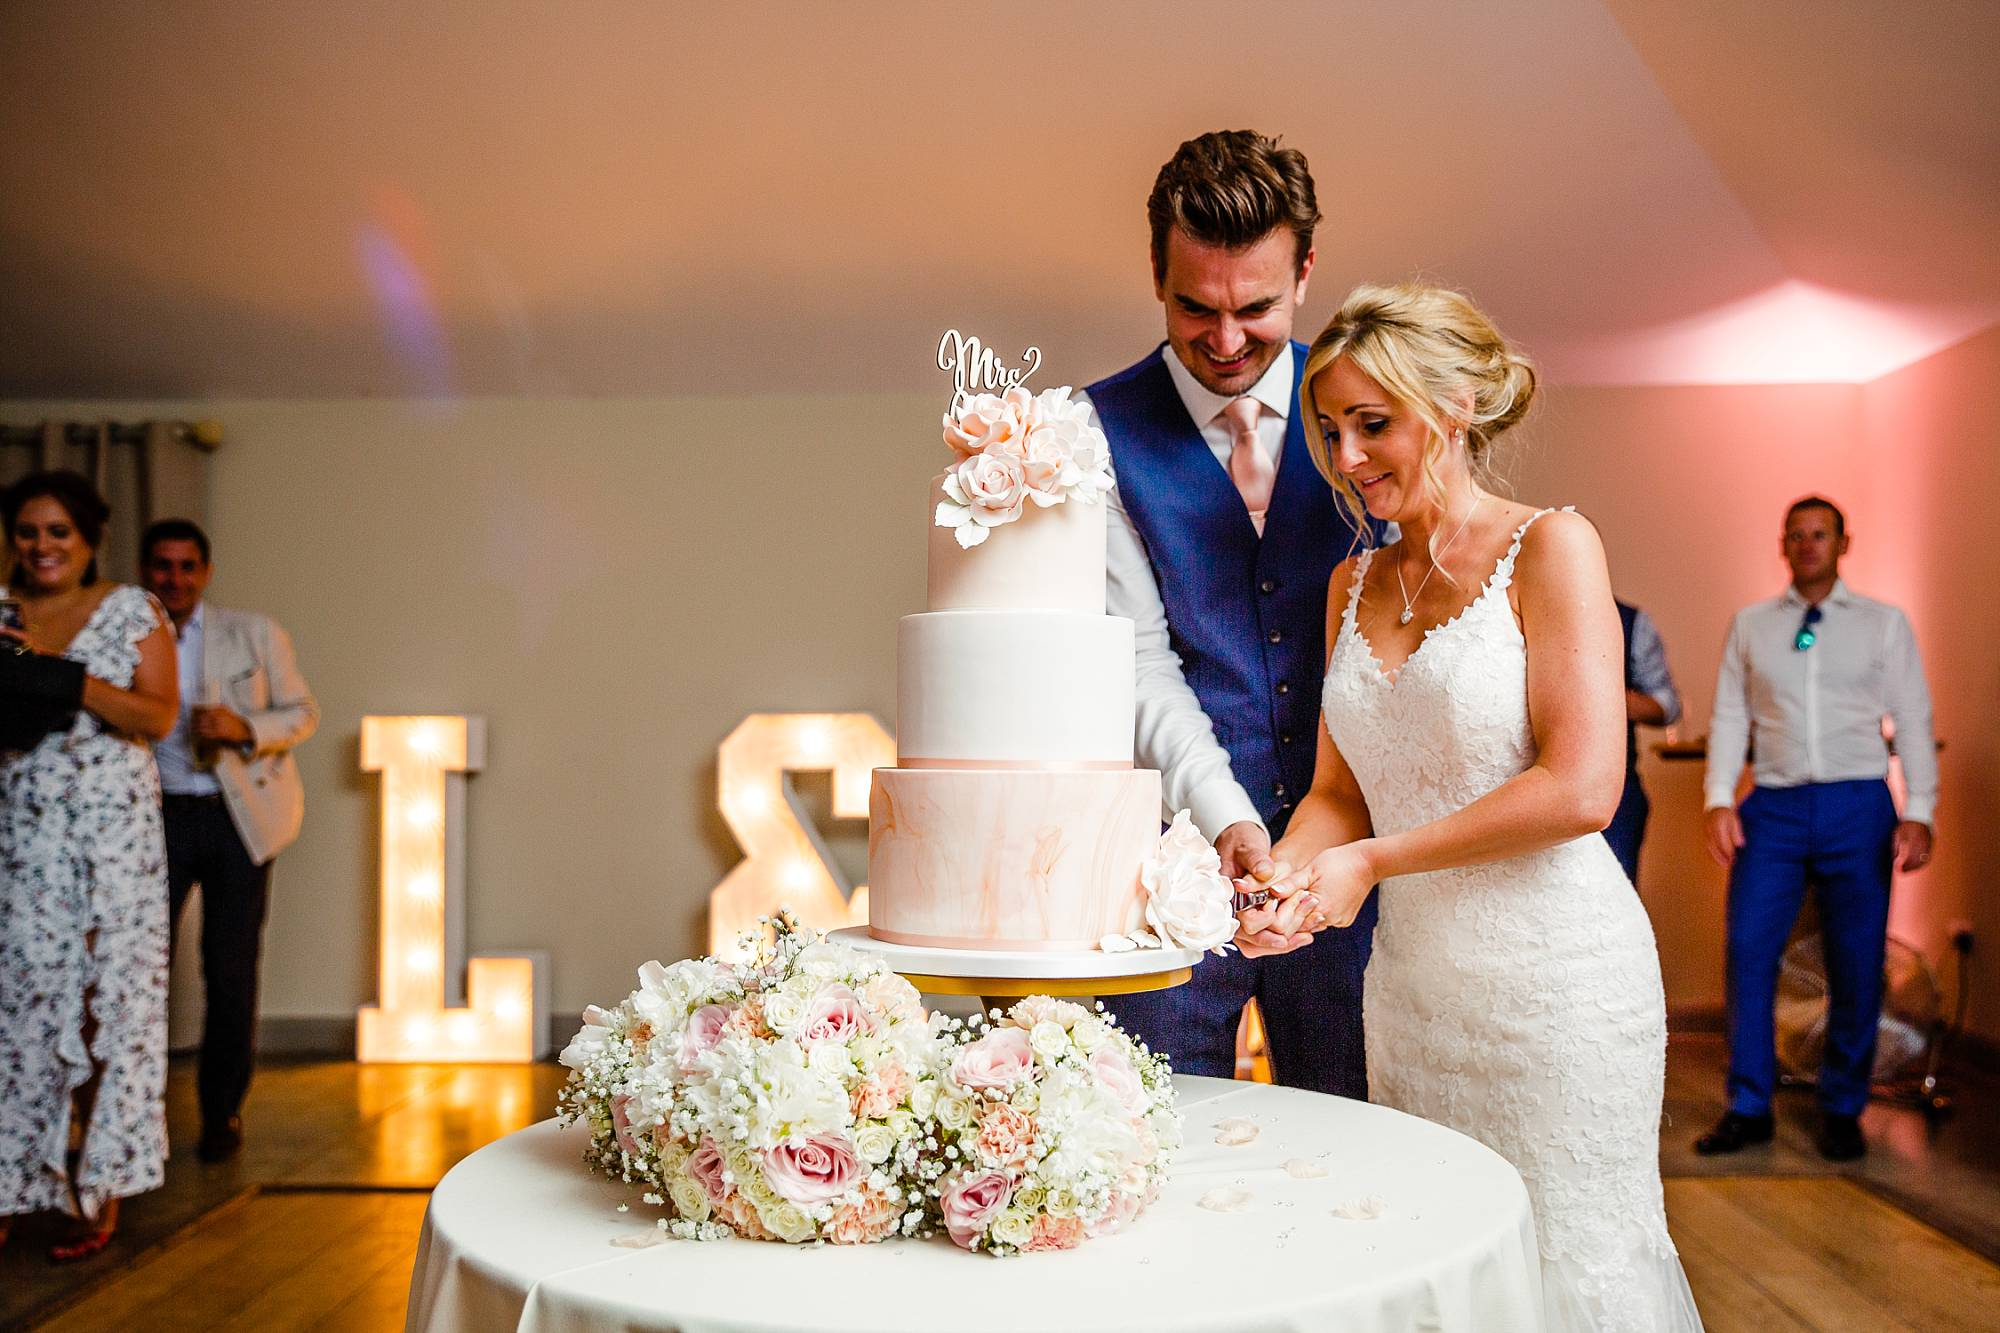 Houchins Essex Wedding Photographer_0099.jpg